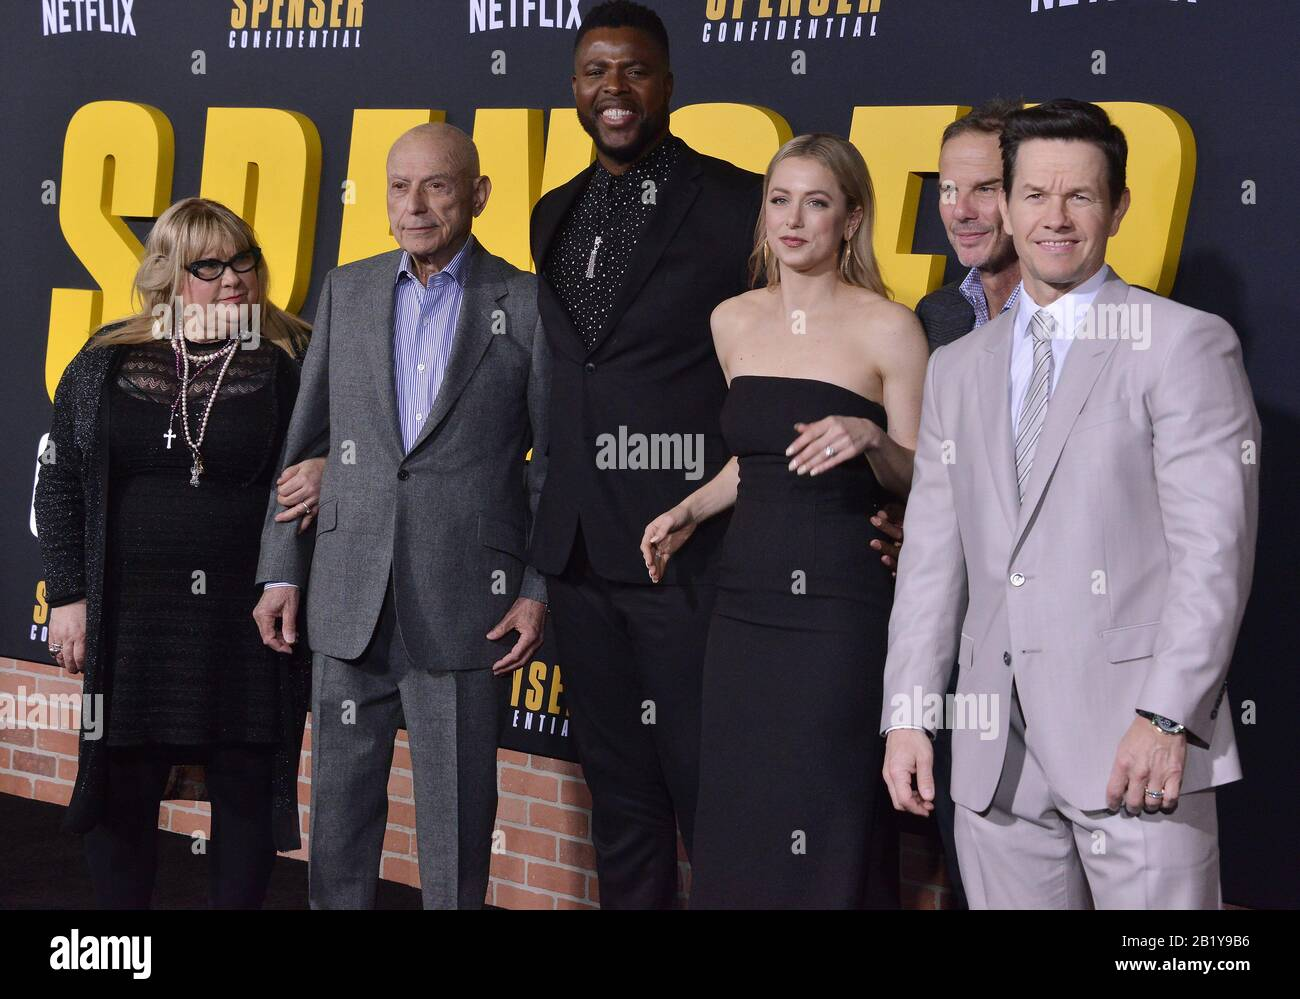 Los Angeles Usa 27th Feb 2020 L R Spenser Confidential Cast Crew Colleen Camp Alan Arkin Winston Duke Iliza Shlesinger Peter Berg And Mark Wahlberg At The Netflix S Spenser Confidential Premiere